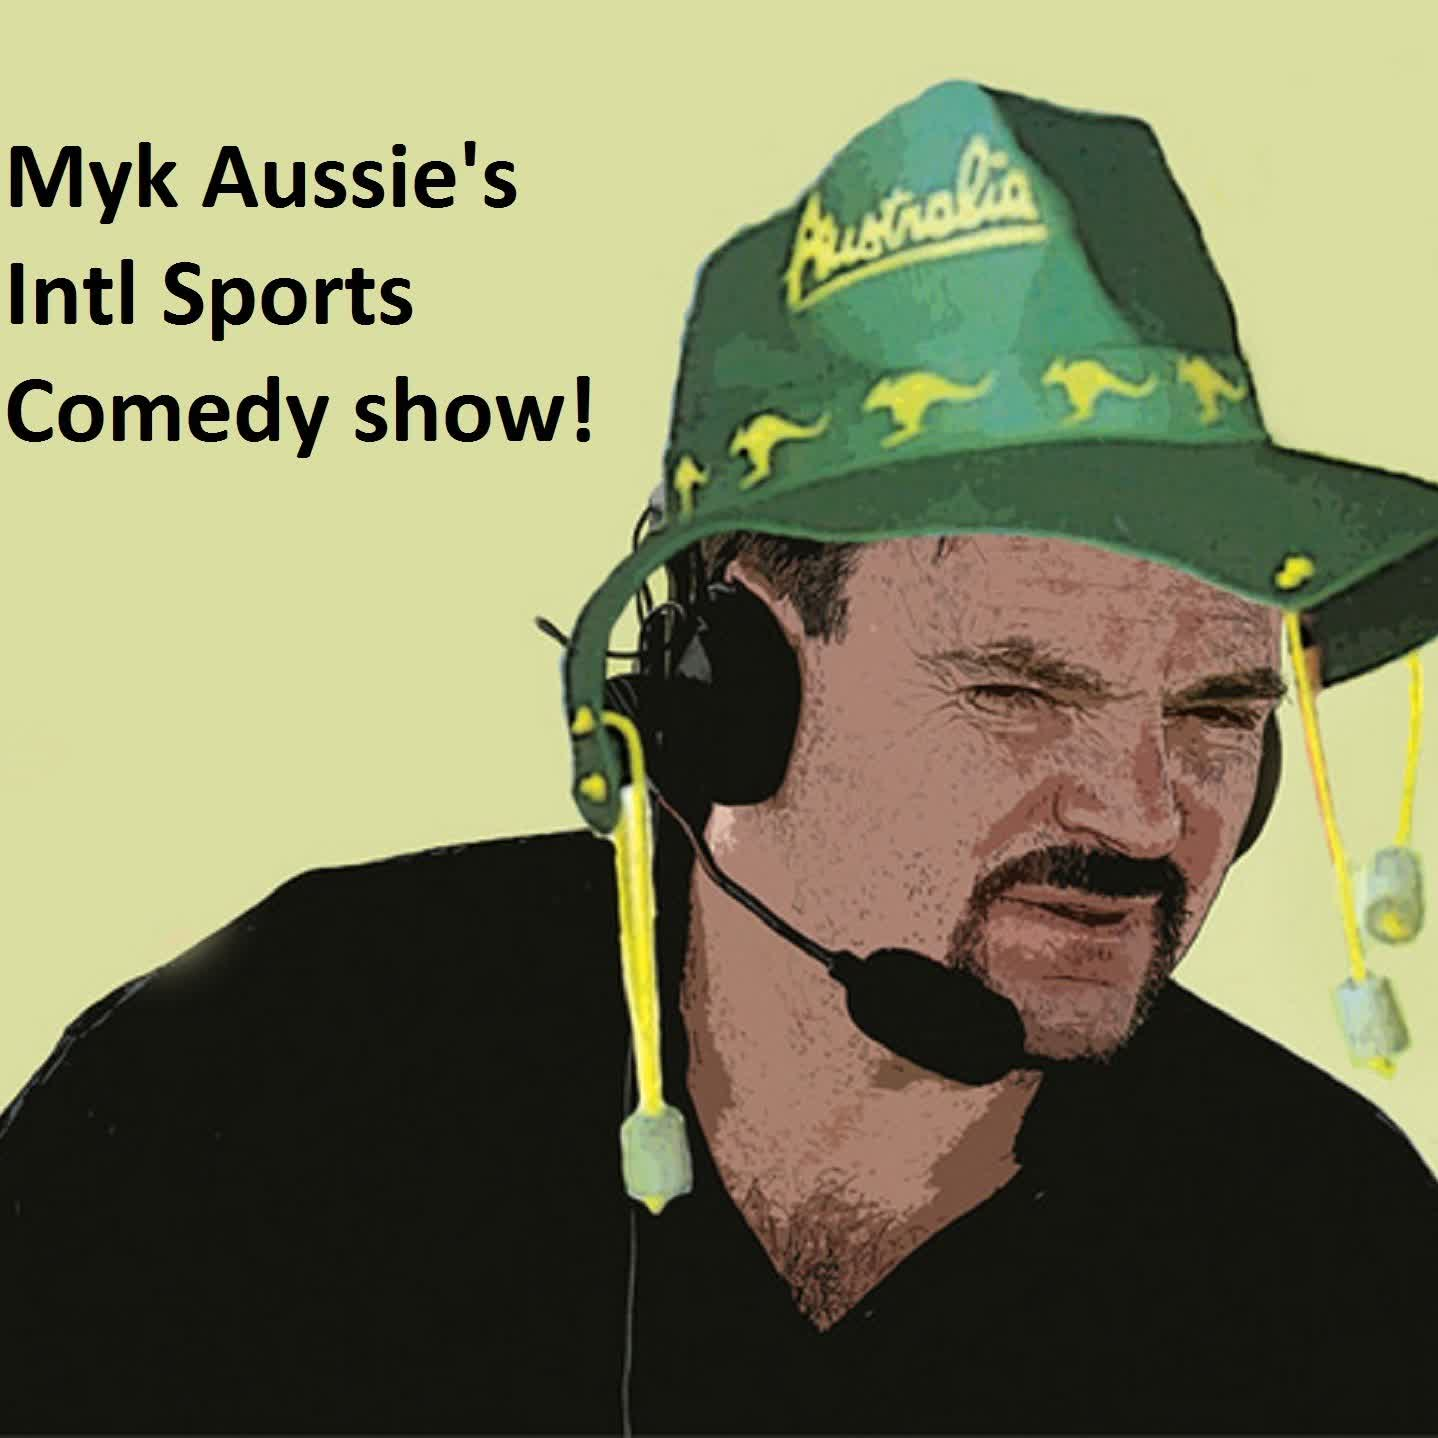 Myk Aussie Intl Sports Comedy show, Super Bowl LIV (54), more - Episode 6